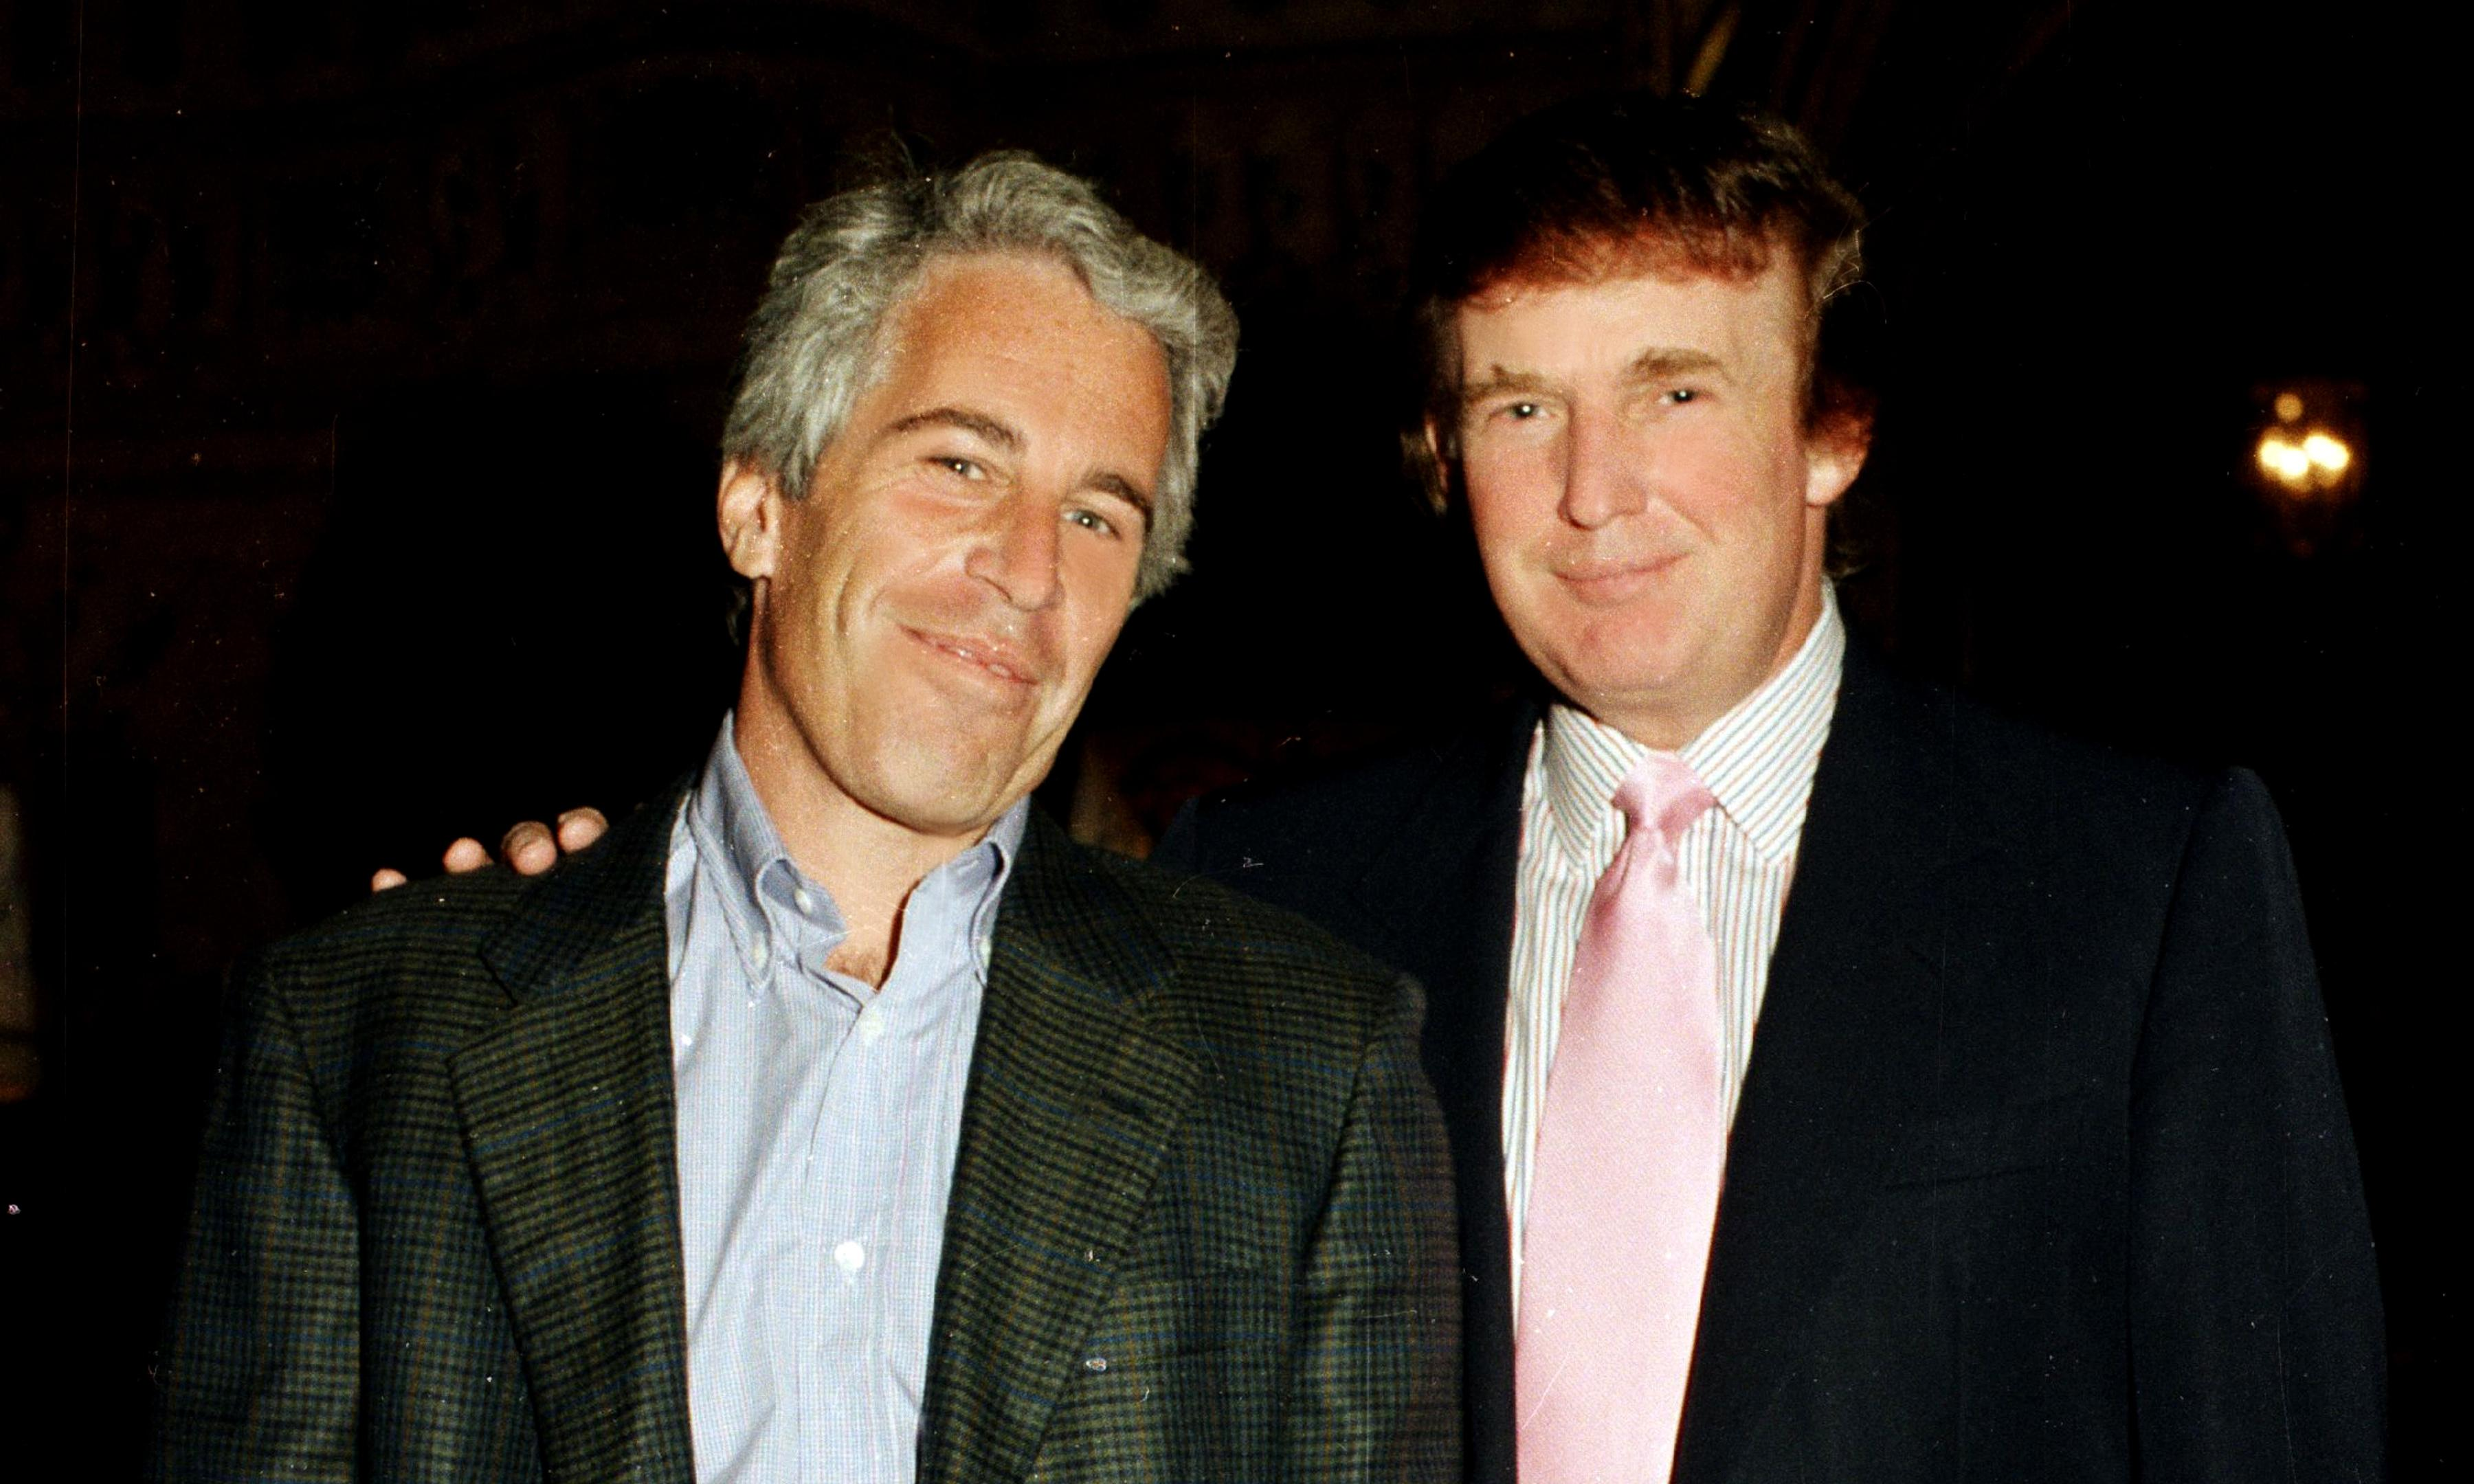 Jeffrey Epstein sexual abuse case could push powerful friends into spotlight